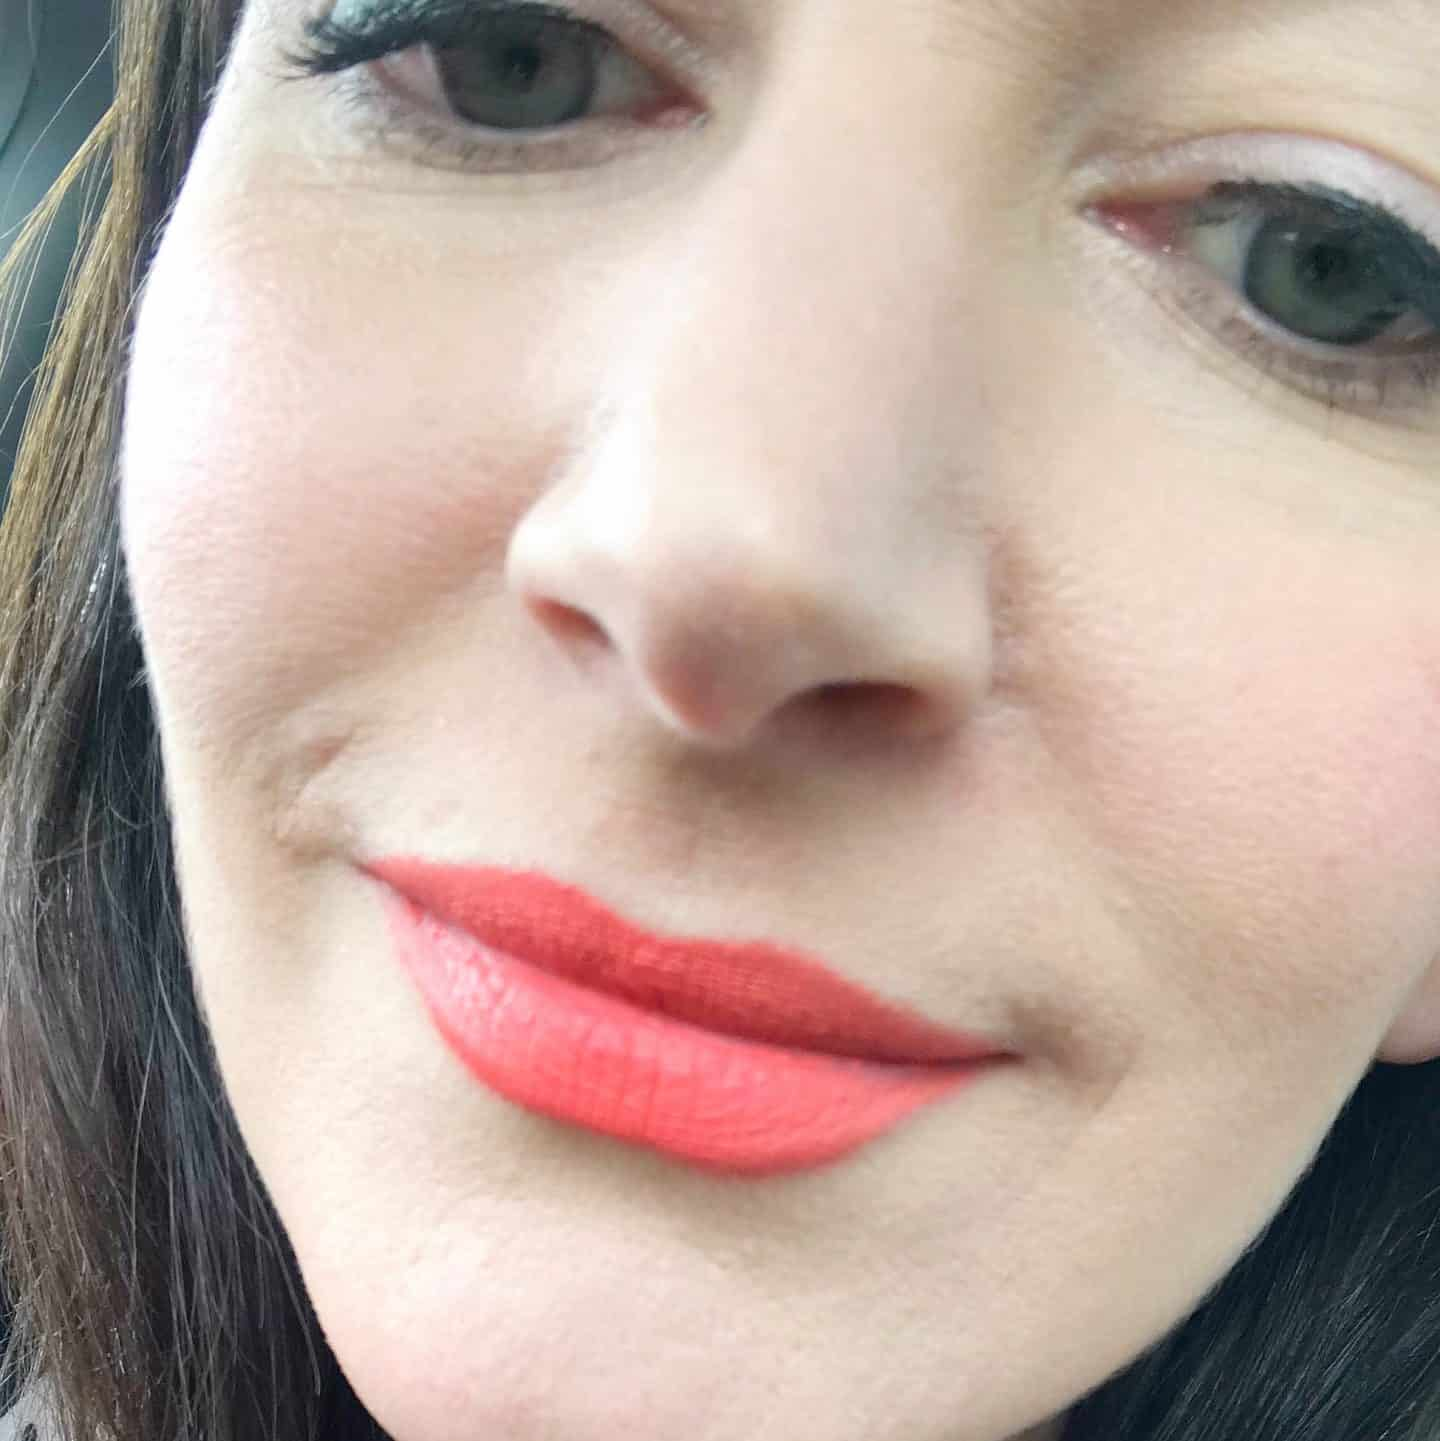 RMS Beauty Wild With Desire Lipstick in Flight of Fancy - after 3 hours and a cup of tea